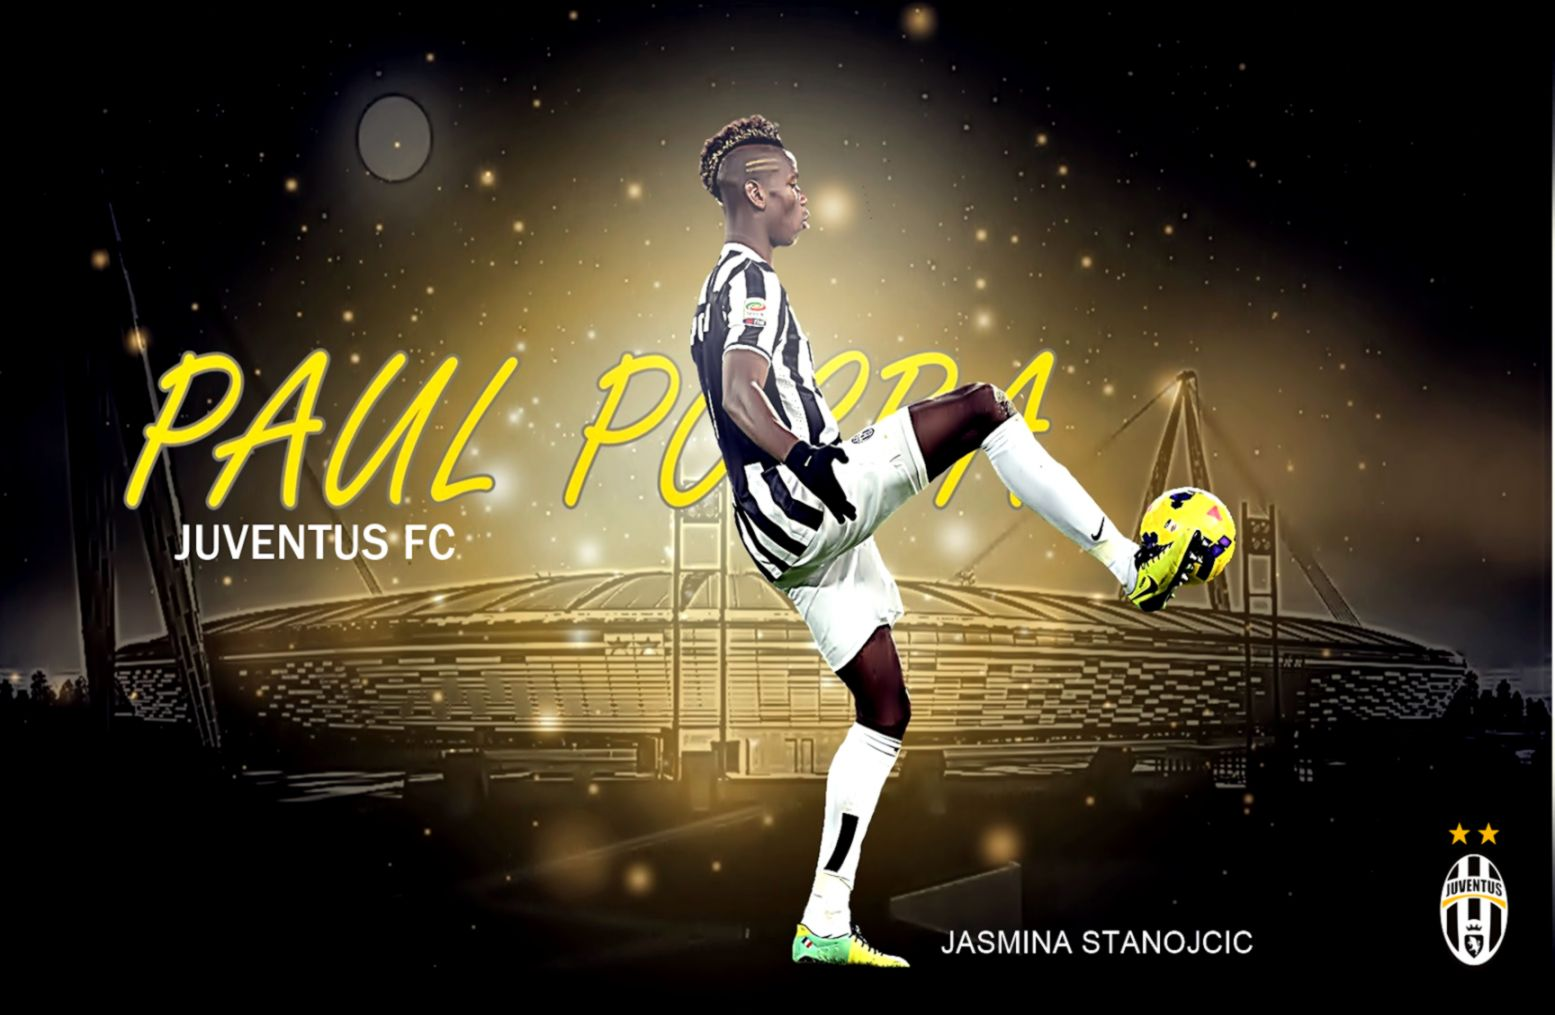 Paul Pogba Desktop Background